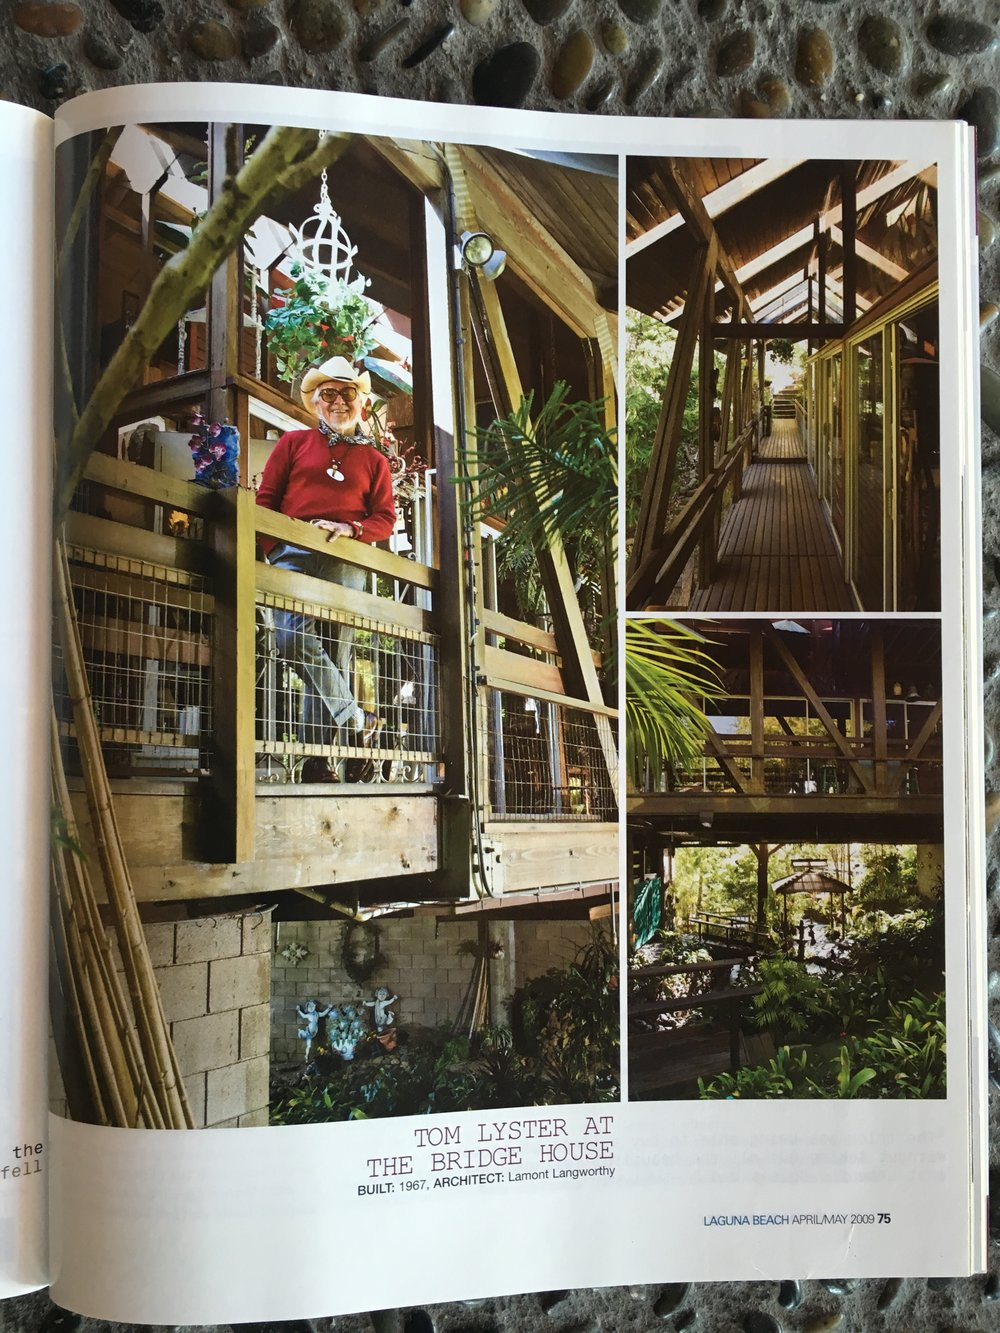 Here is my Dad, Tom Lyster, featured in an article about the Bridge House in 2009.